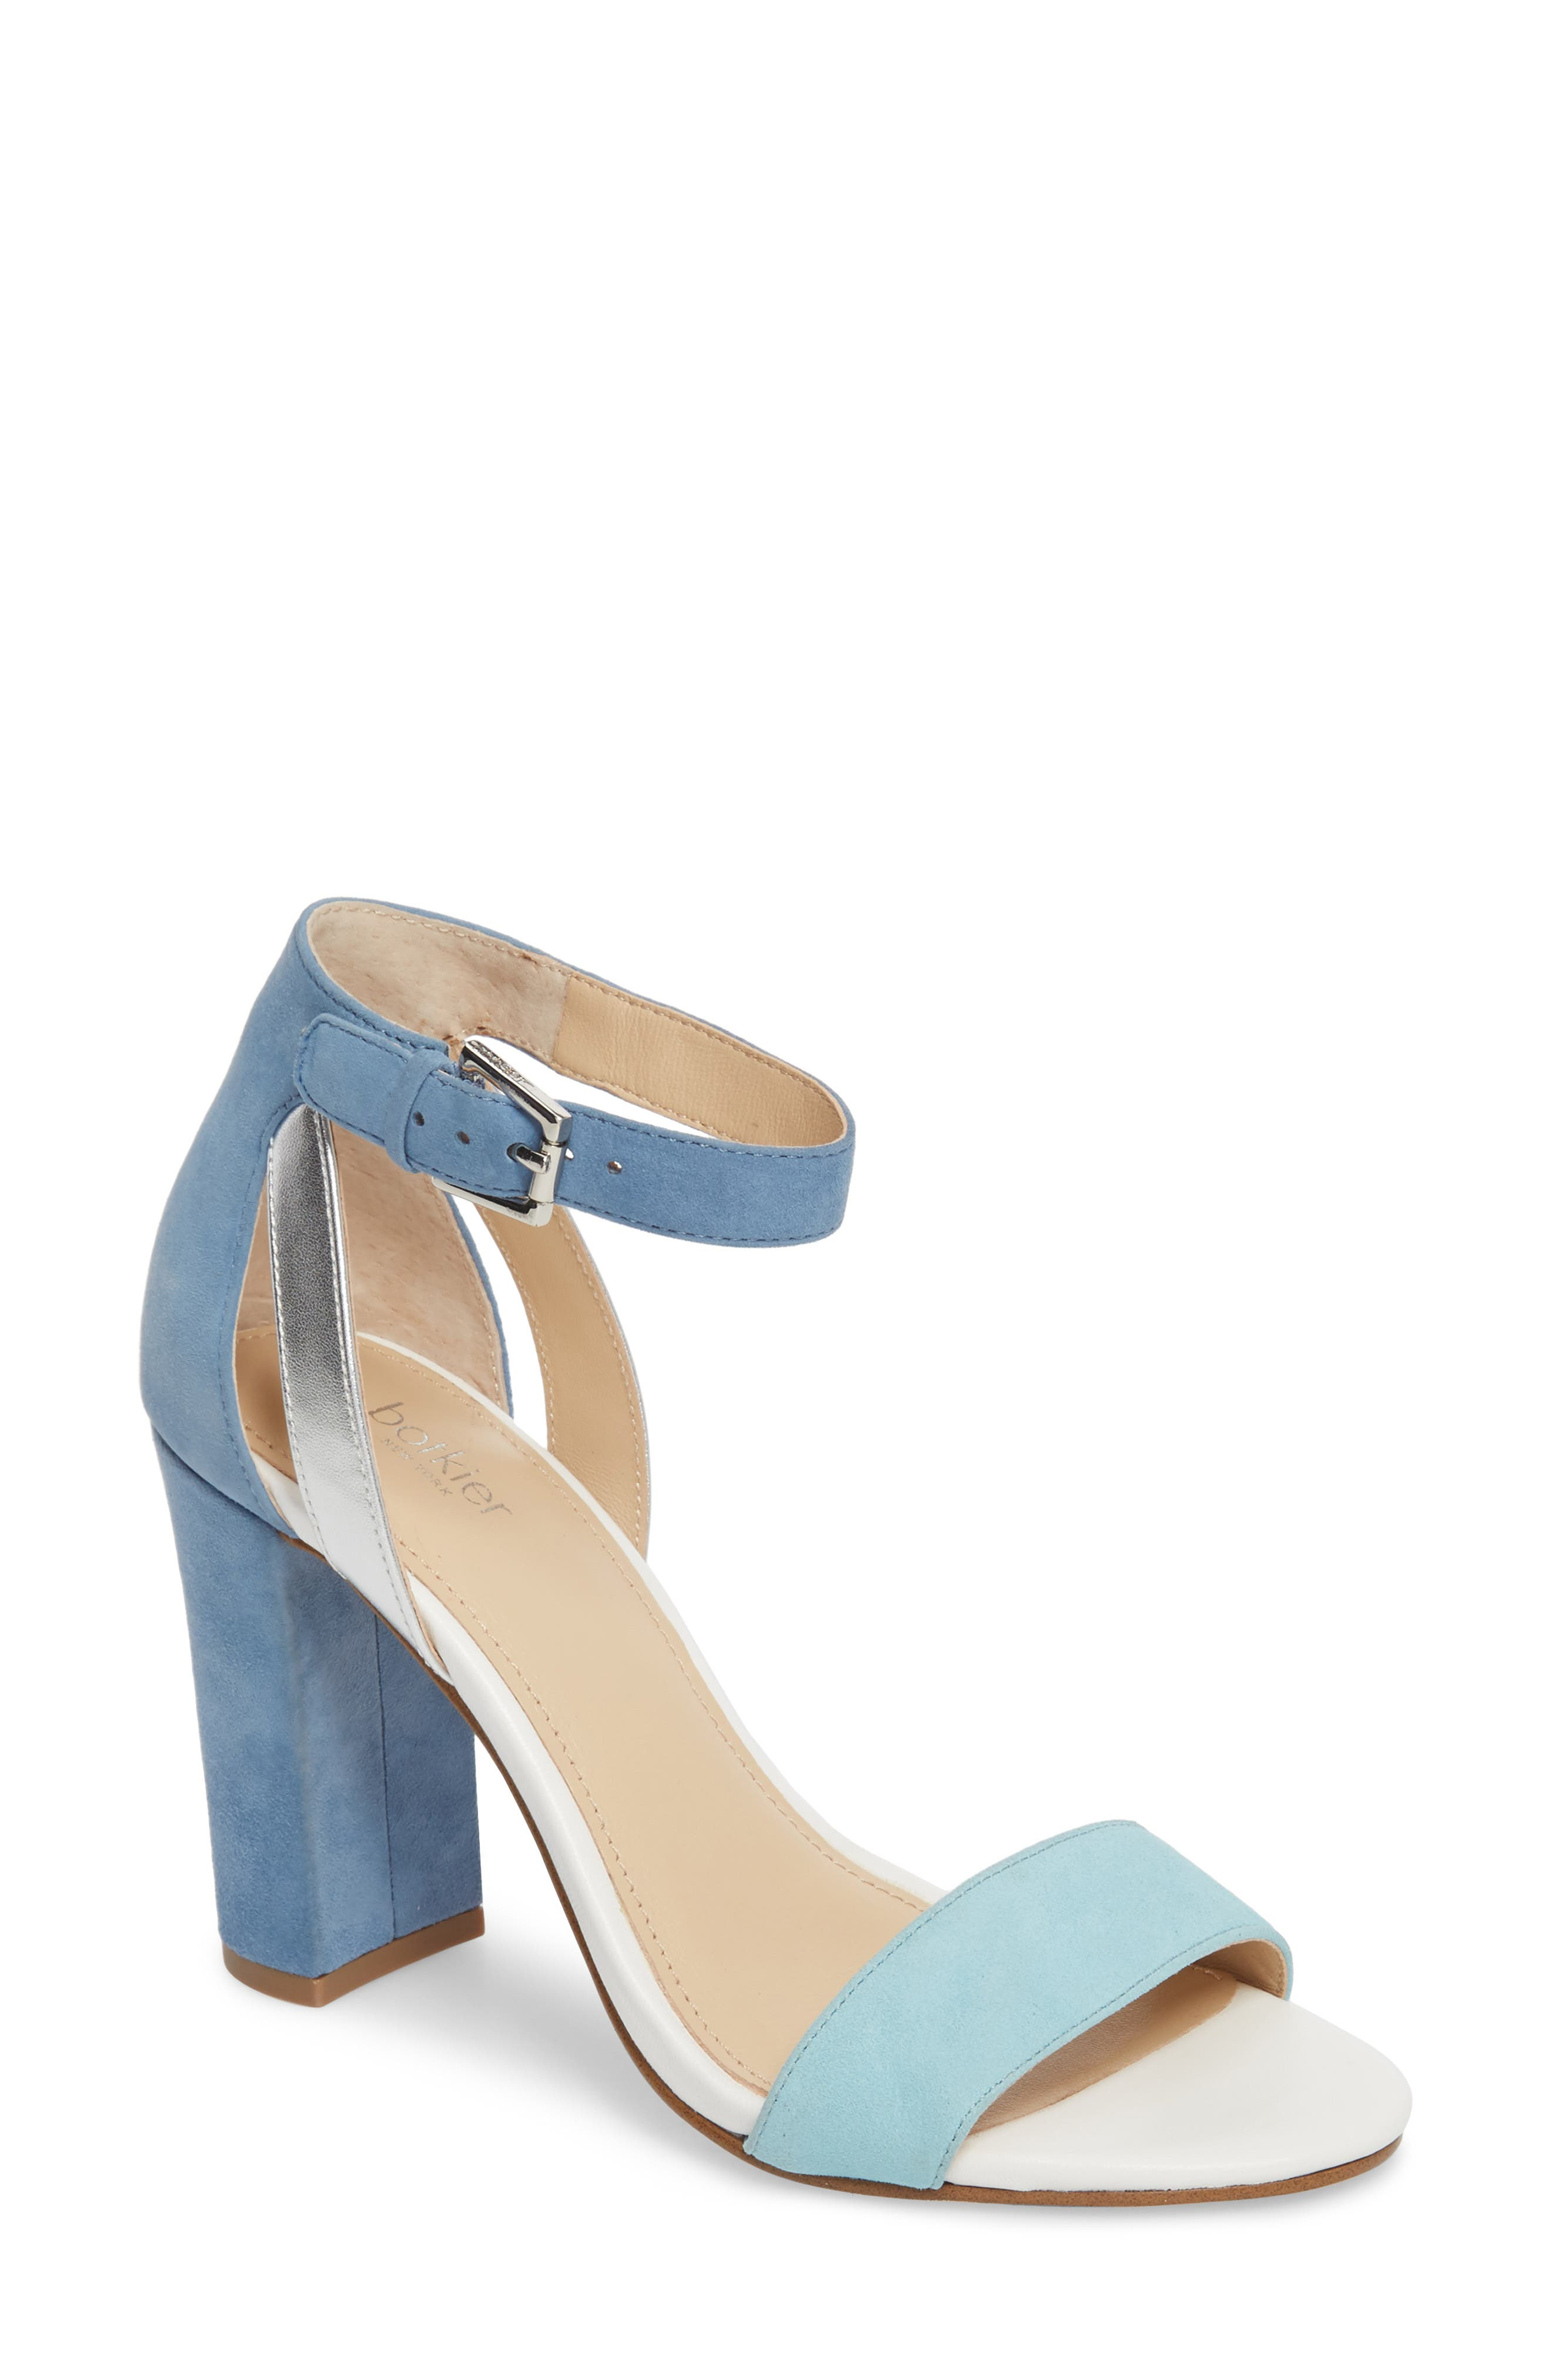 Gianna Ankle Strap Sandal,                         Main,                         color, SKY SUEDE